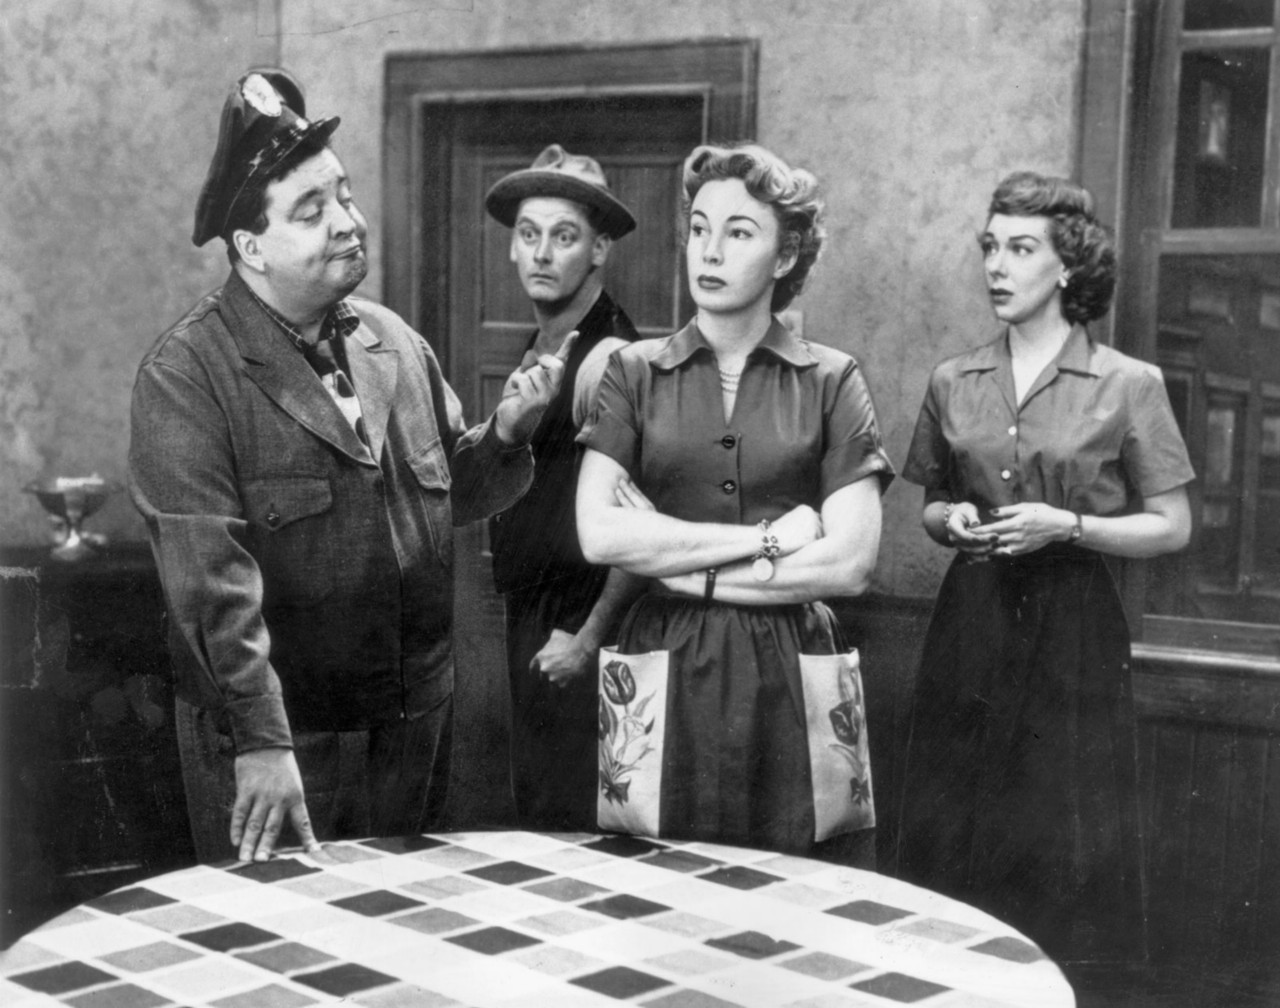 The-Honeymooners-8x10-11x17-16x20-24x36-27x40-TV-Poster-Vintage-Jackie ...